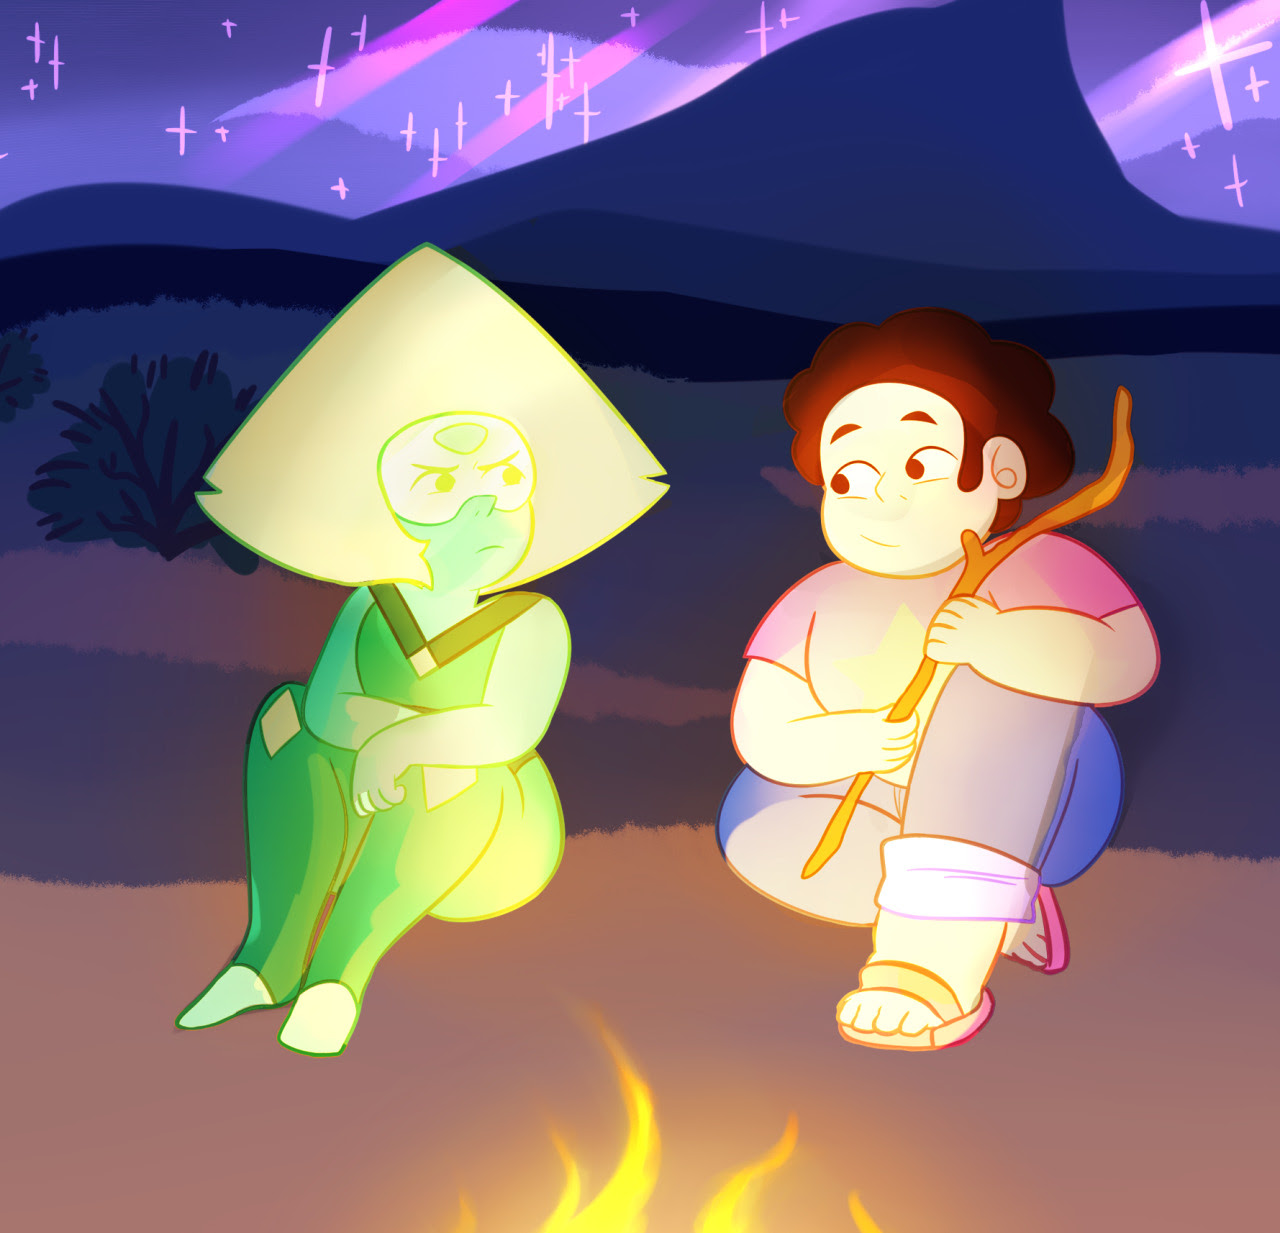 glad to see peridot being wacky